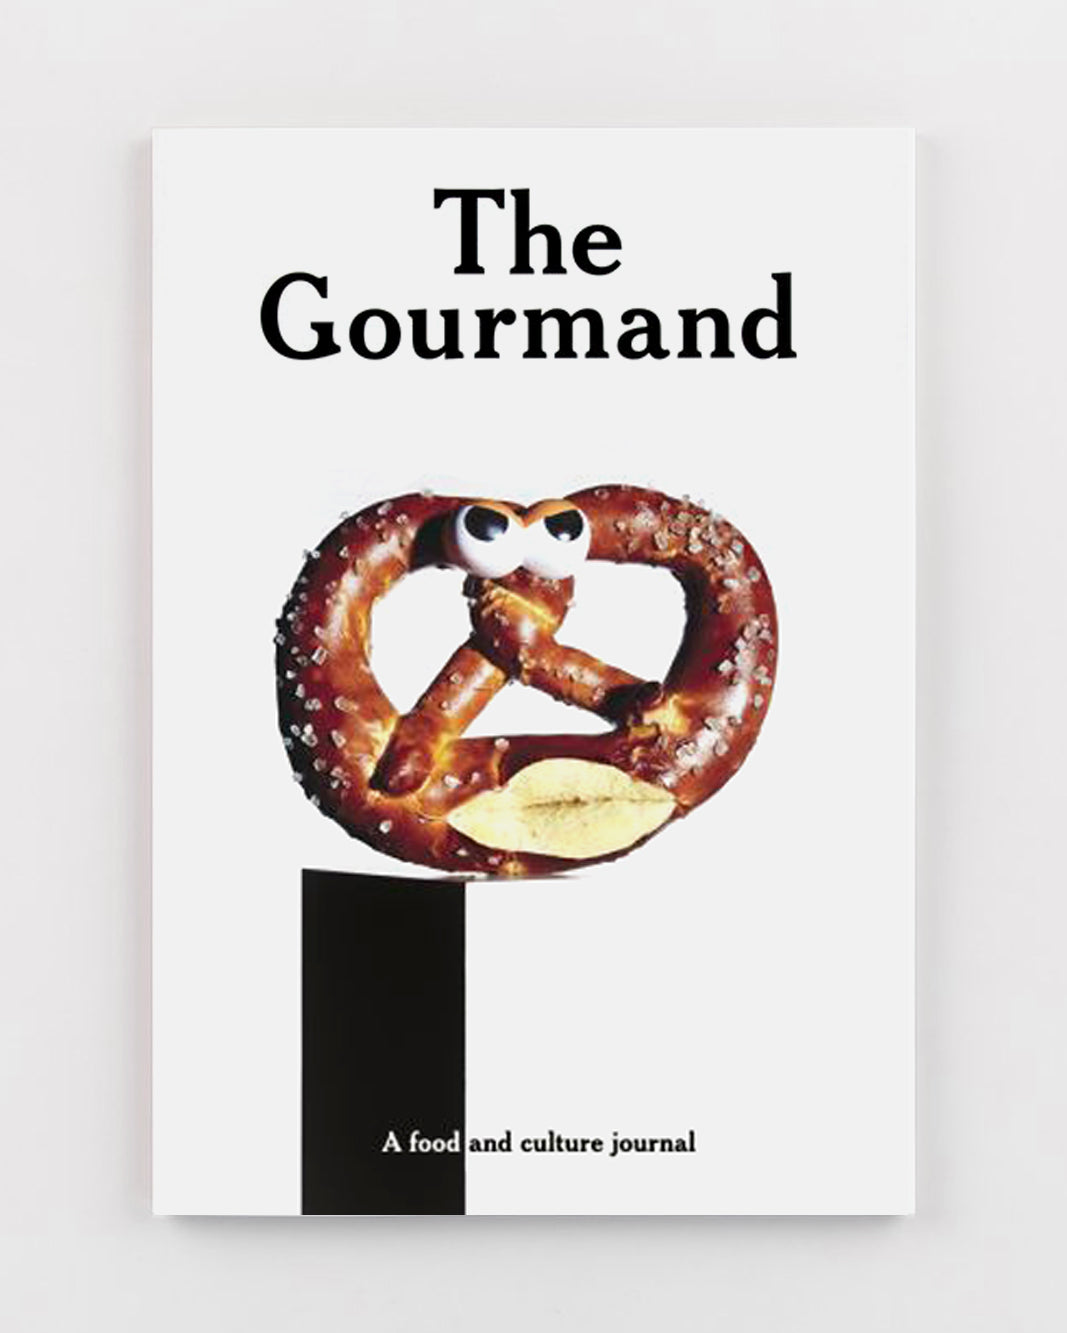 Revista The Gourmand | The Gourmand magazine - Samtida